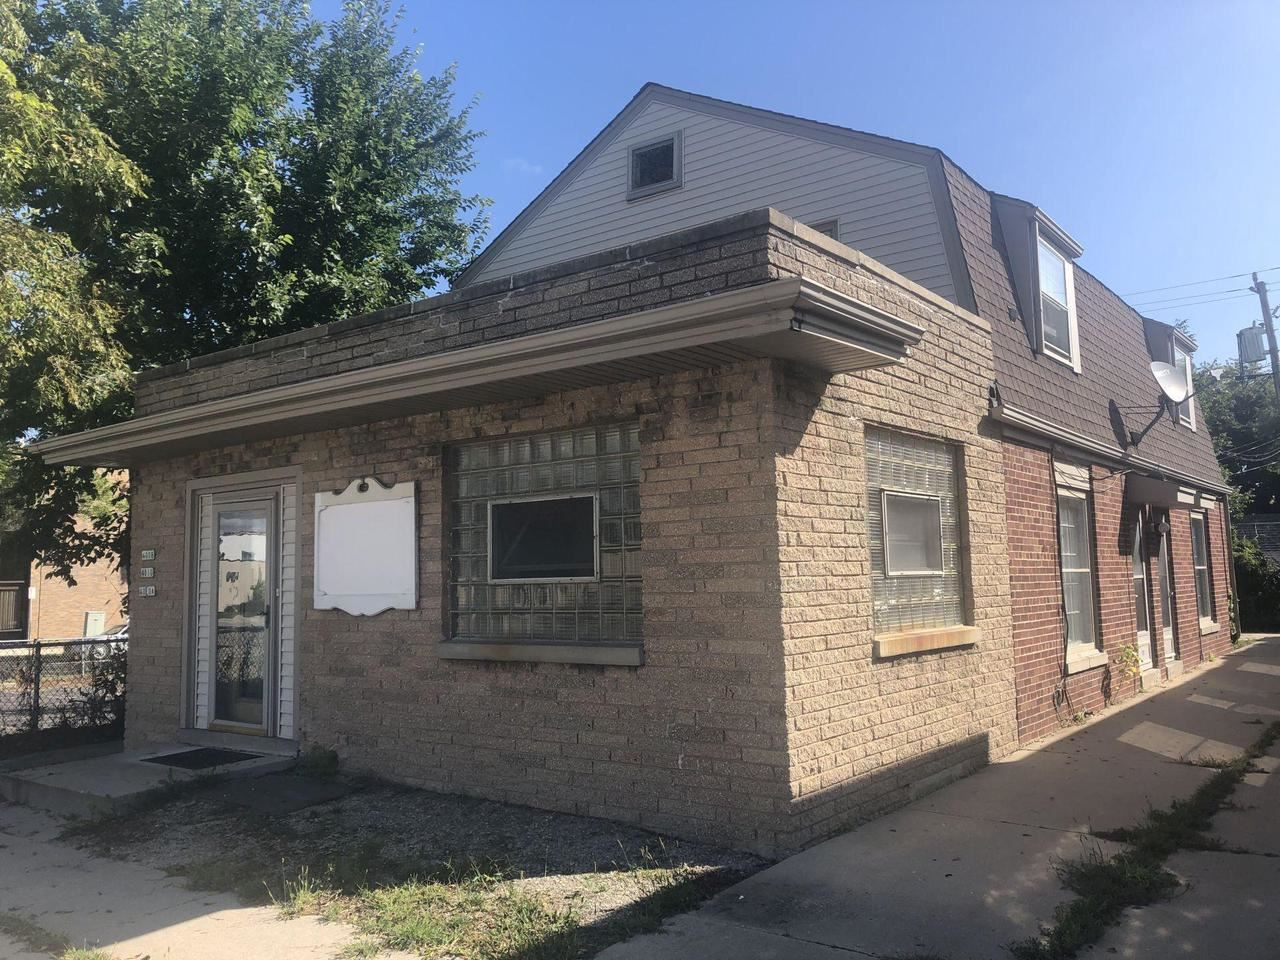 4008 S Howell Ave, Milwaukee, WI 53207 - MLS#: 1711011